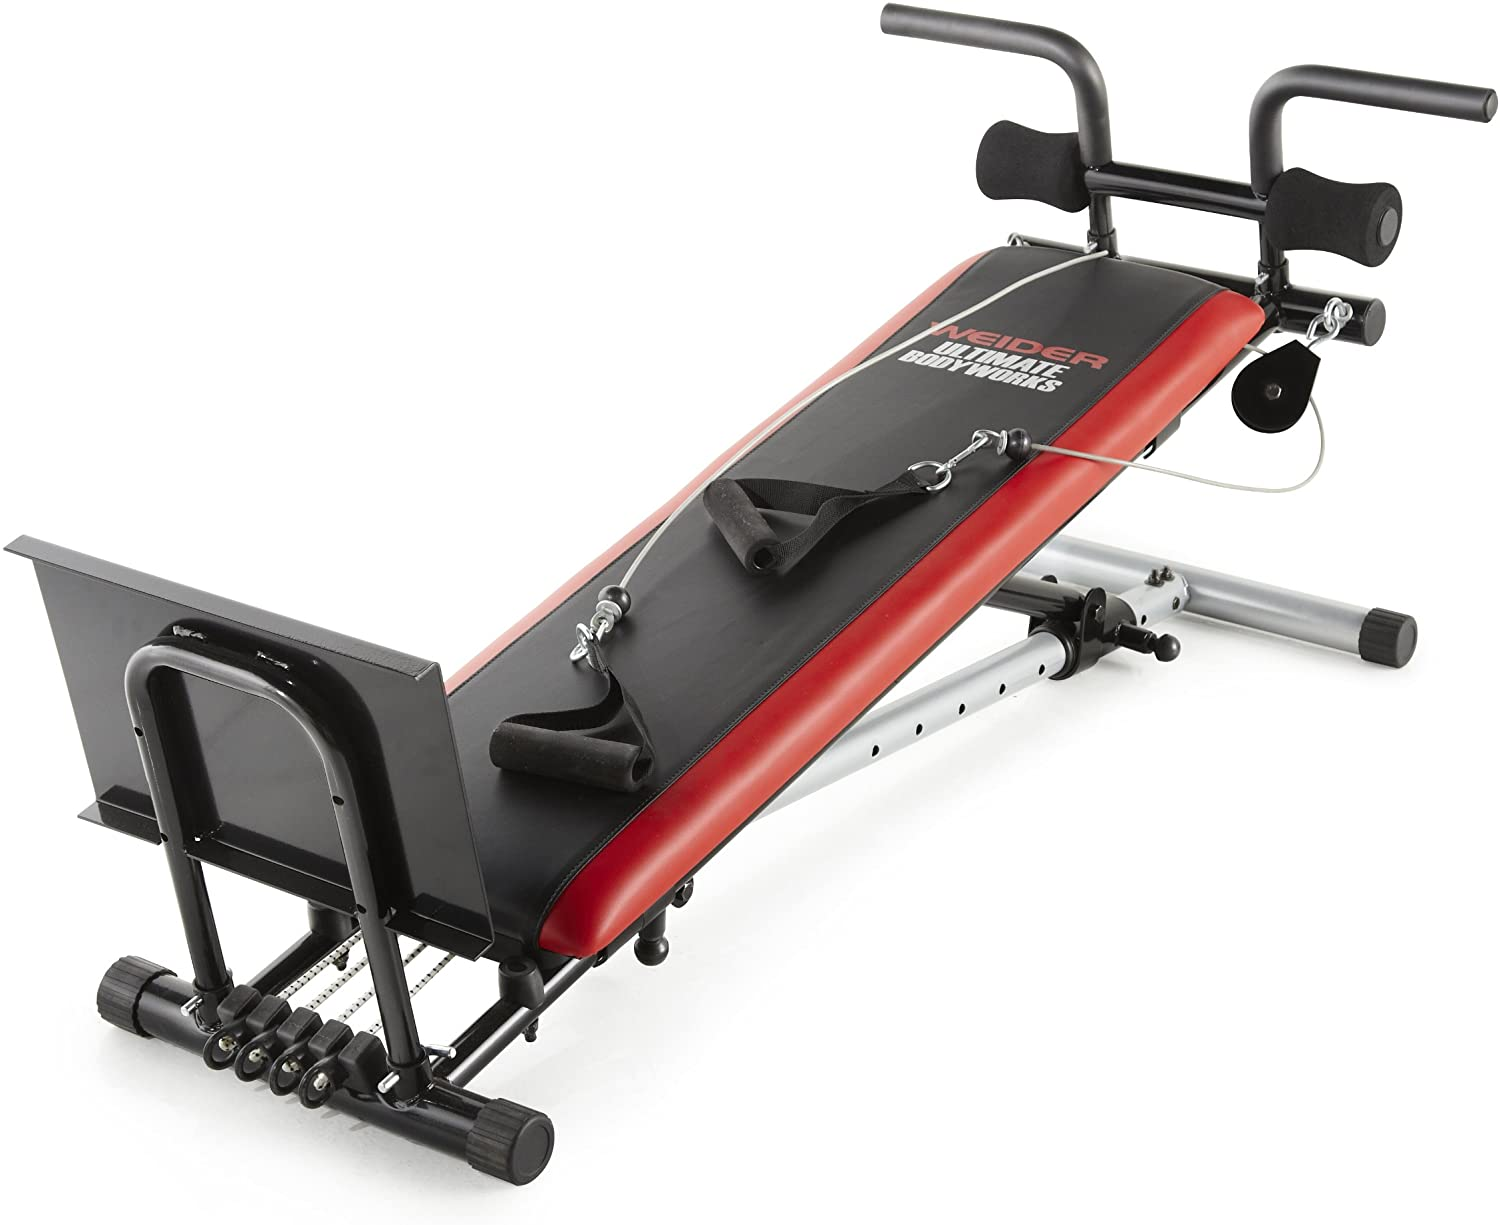 Review of Weider Ultimate Body Works Black/Red, Standard